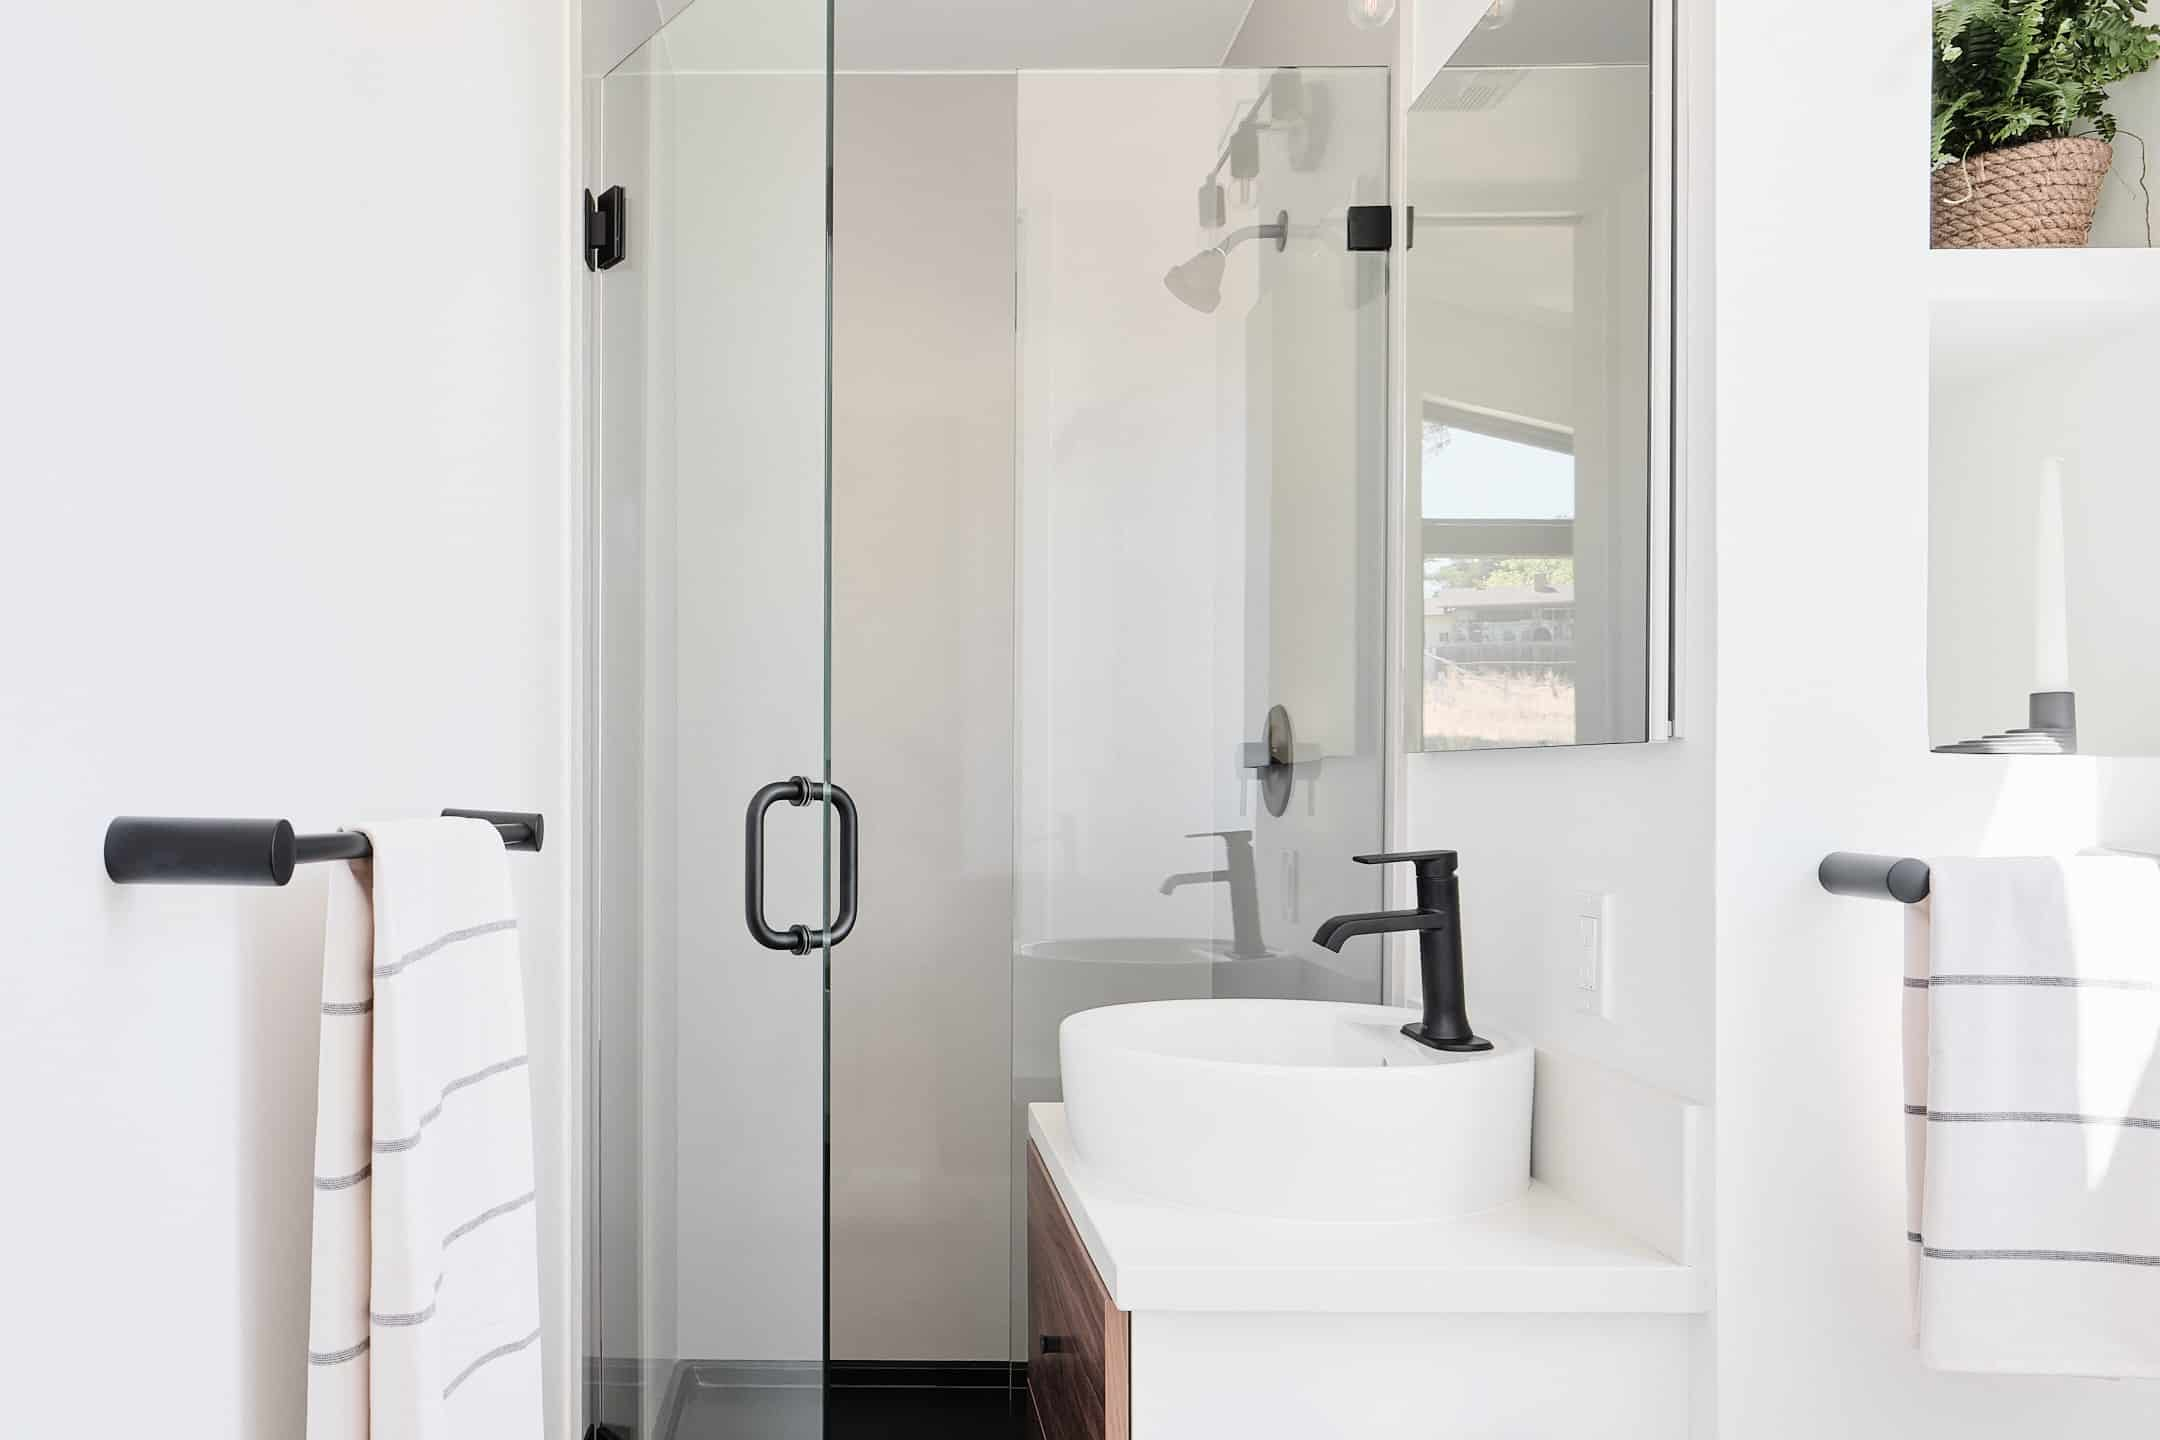 Prefab tiny home bathroom by Abodu